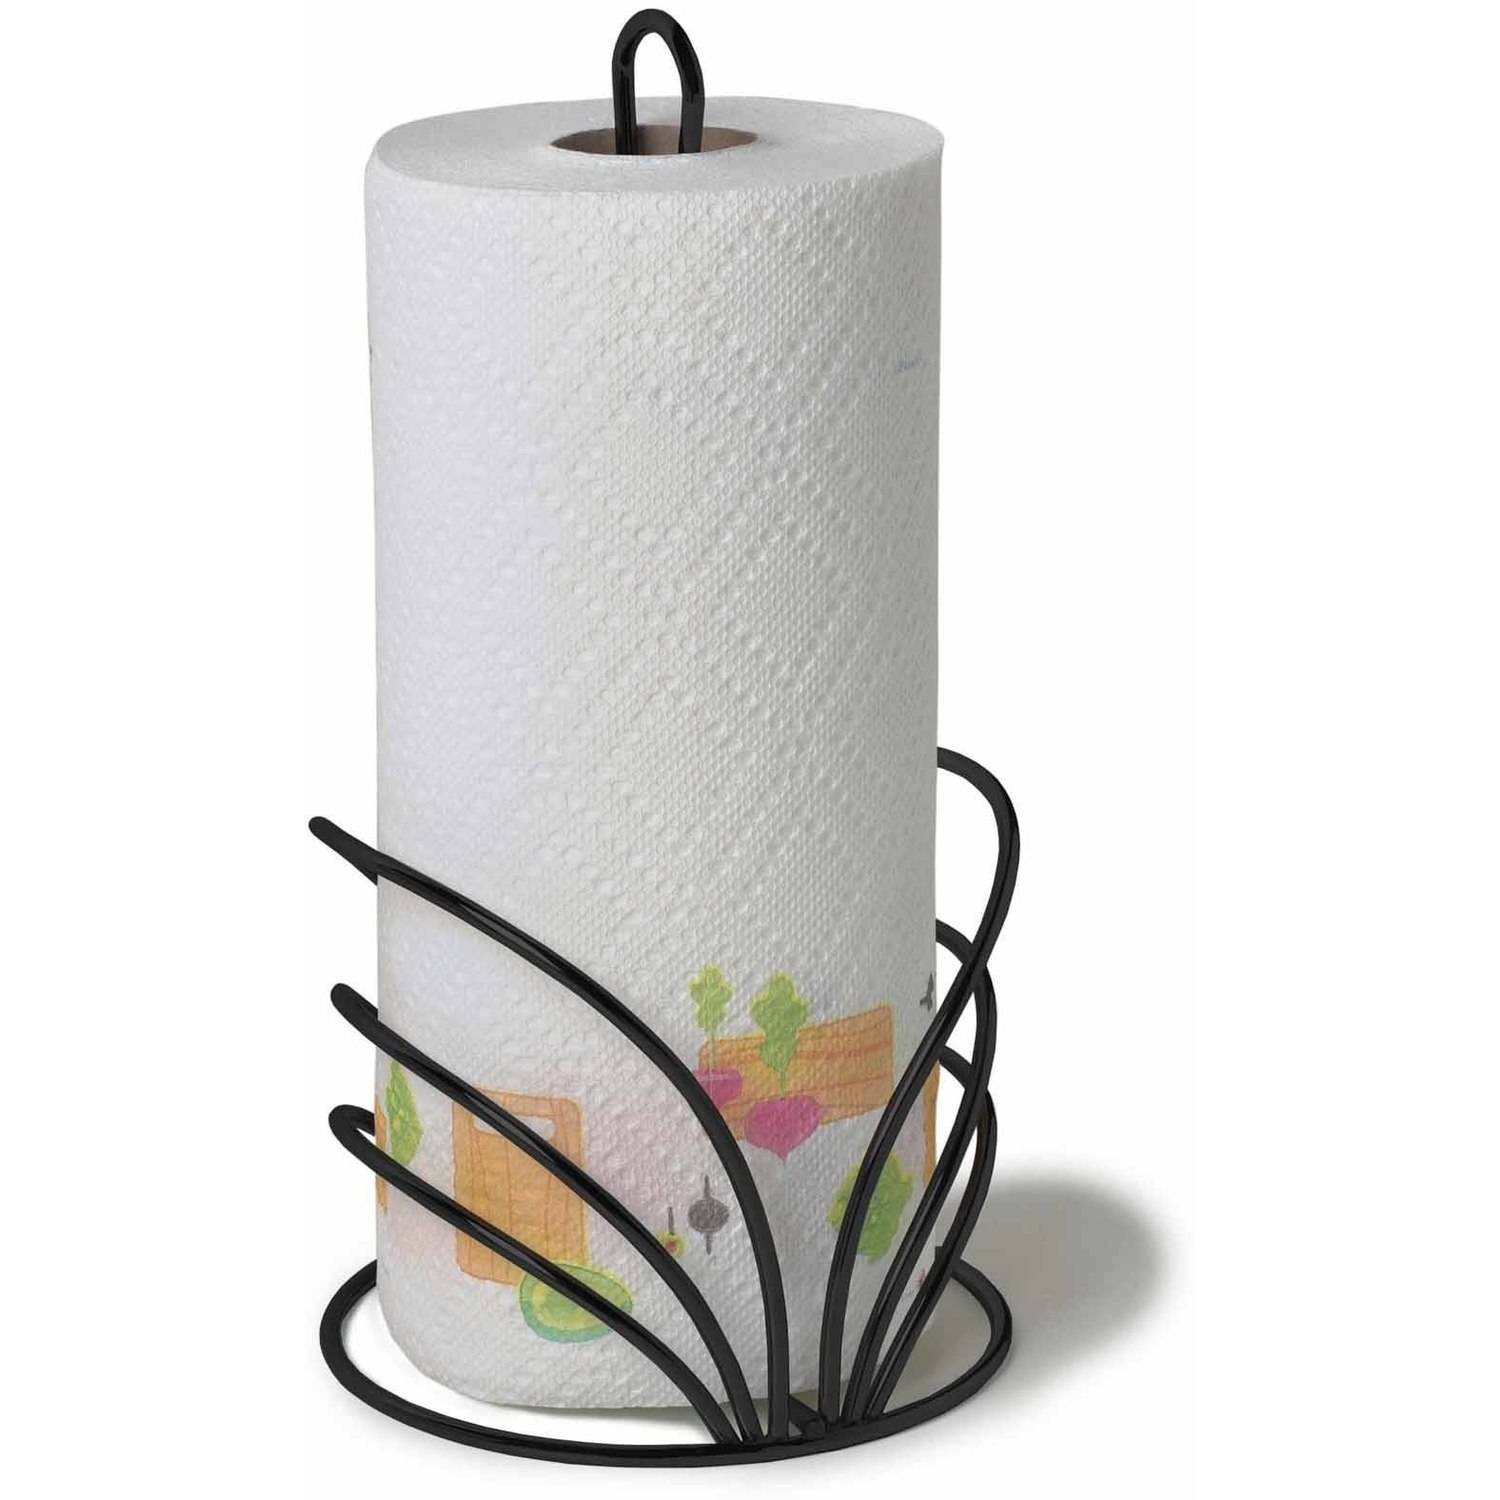 Spectrum Flower Paper Towel Holder, Black